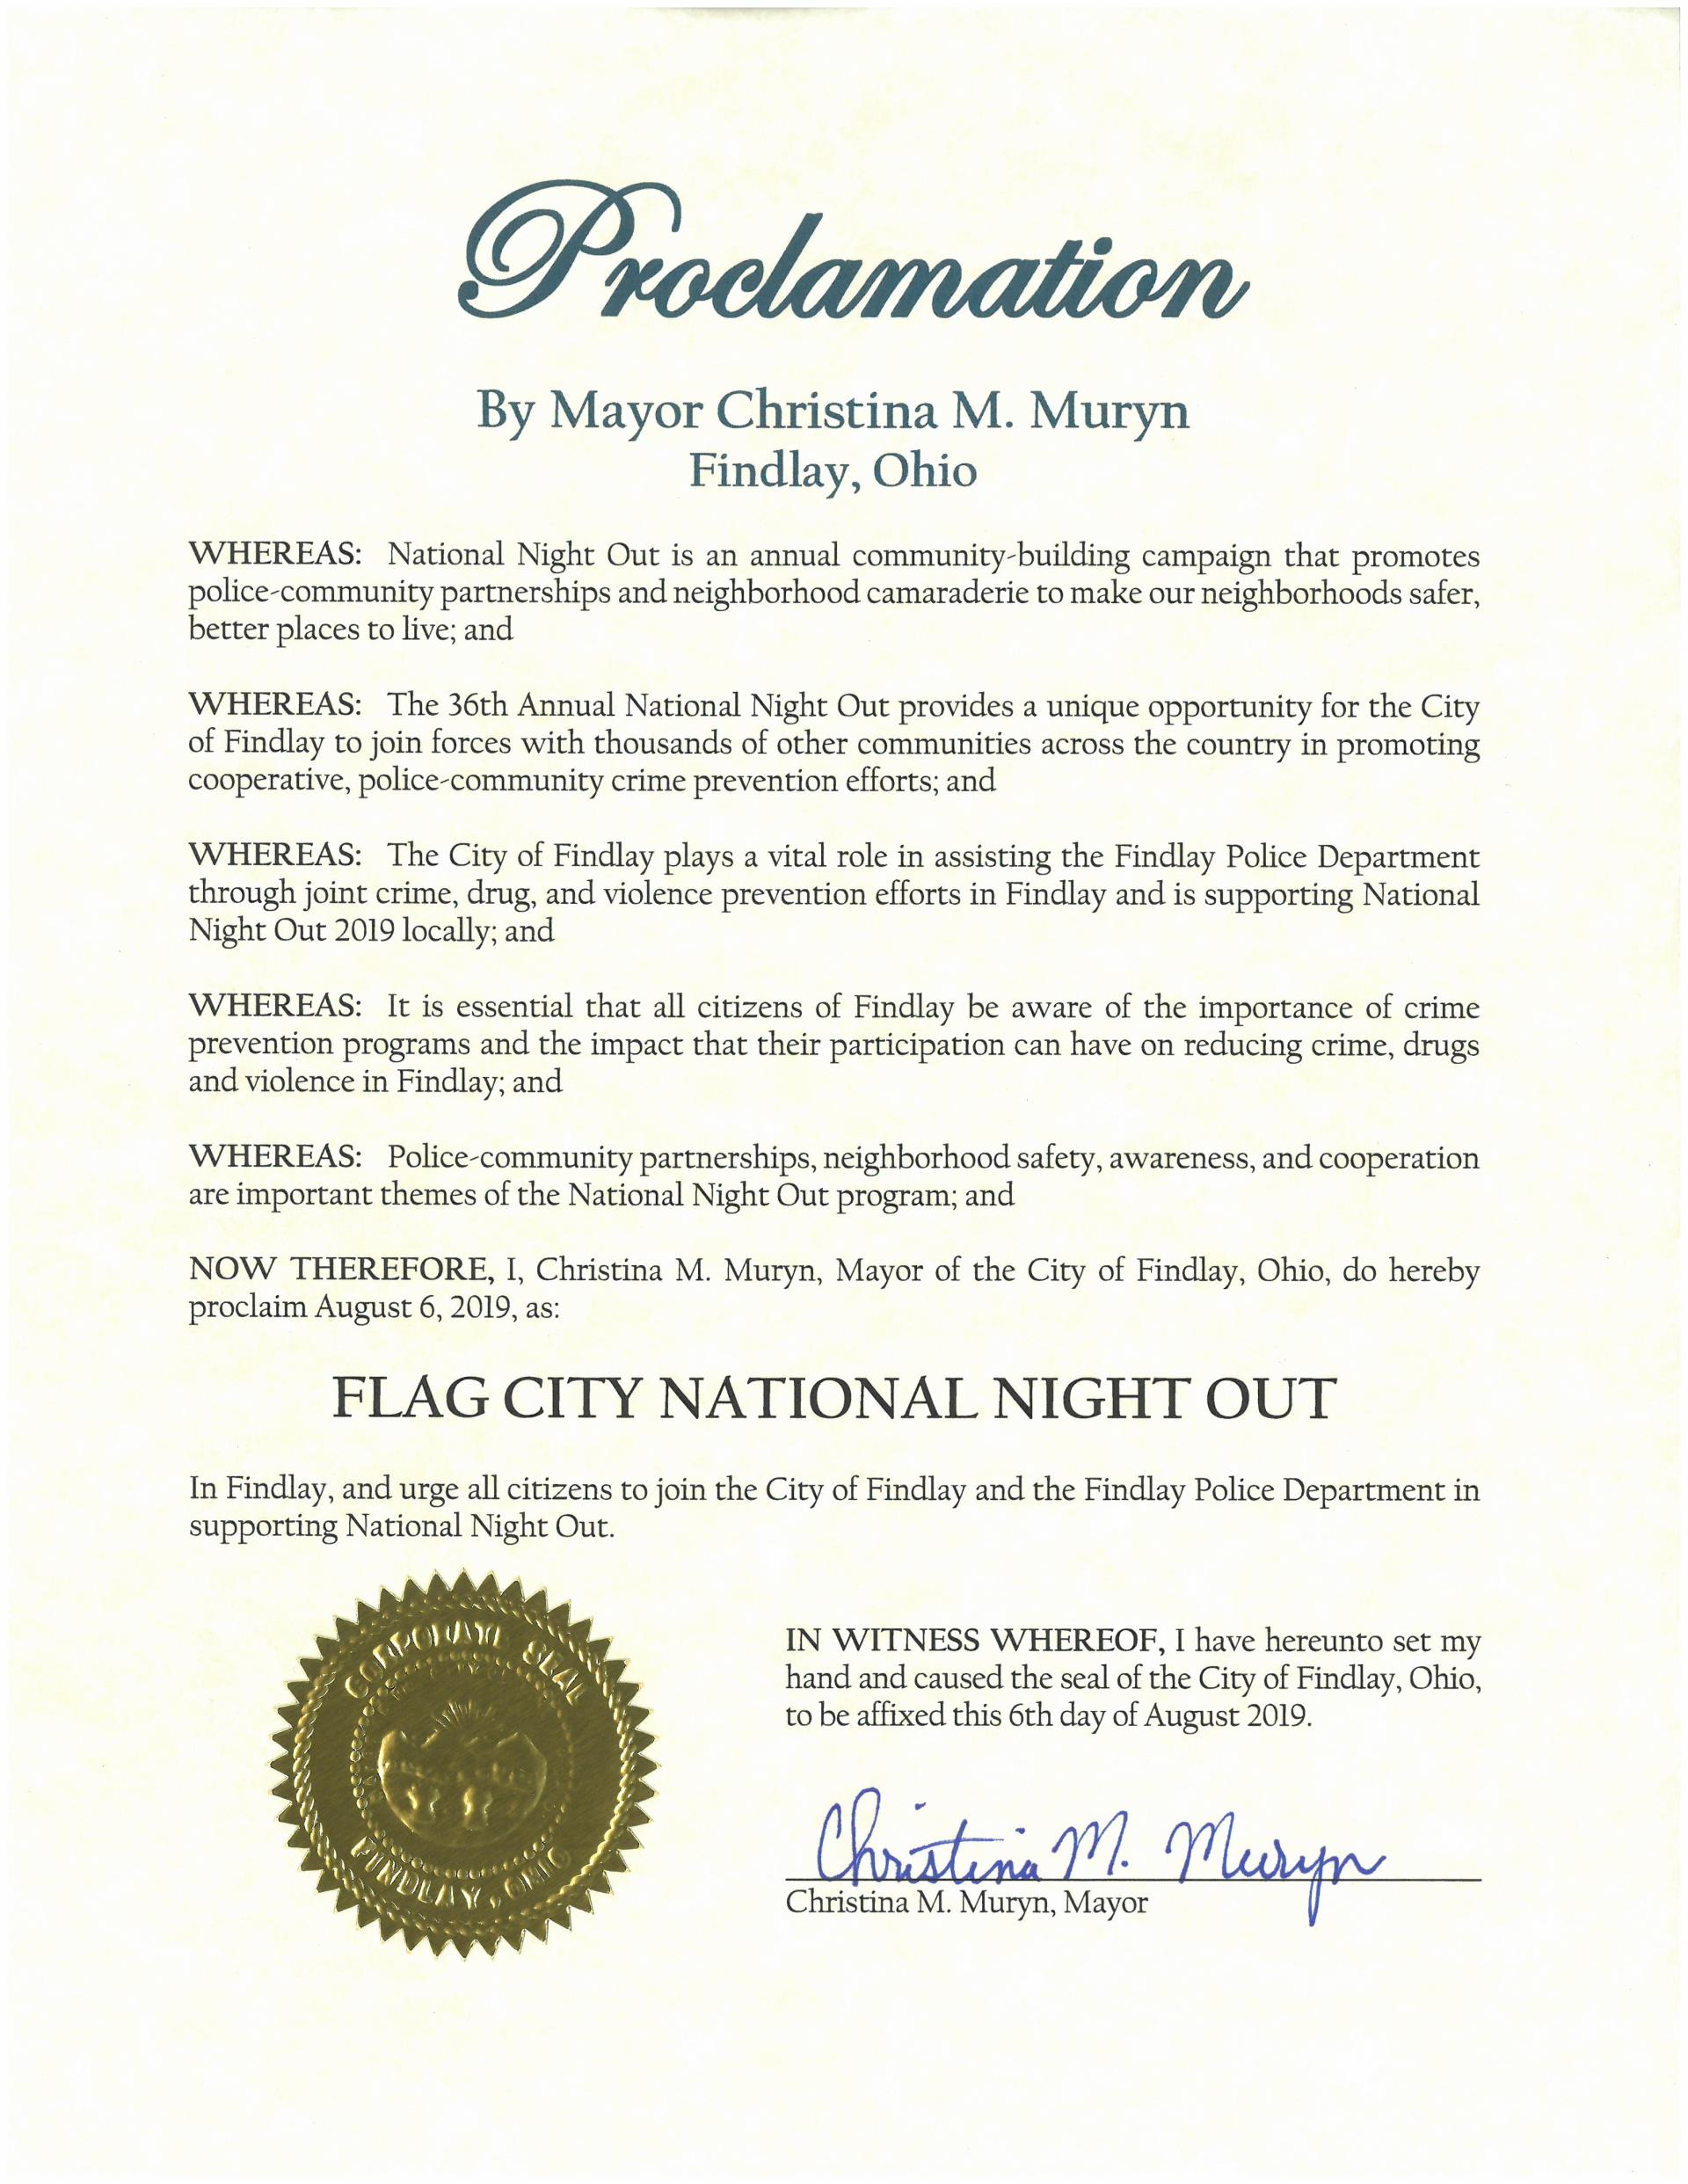 2019.08.06.Flag City National Night Out Proclamation